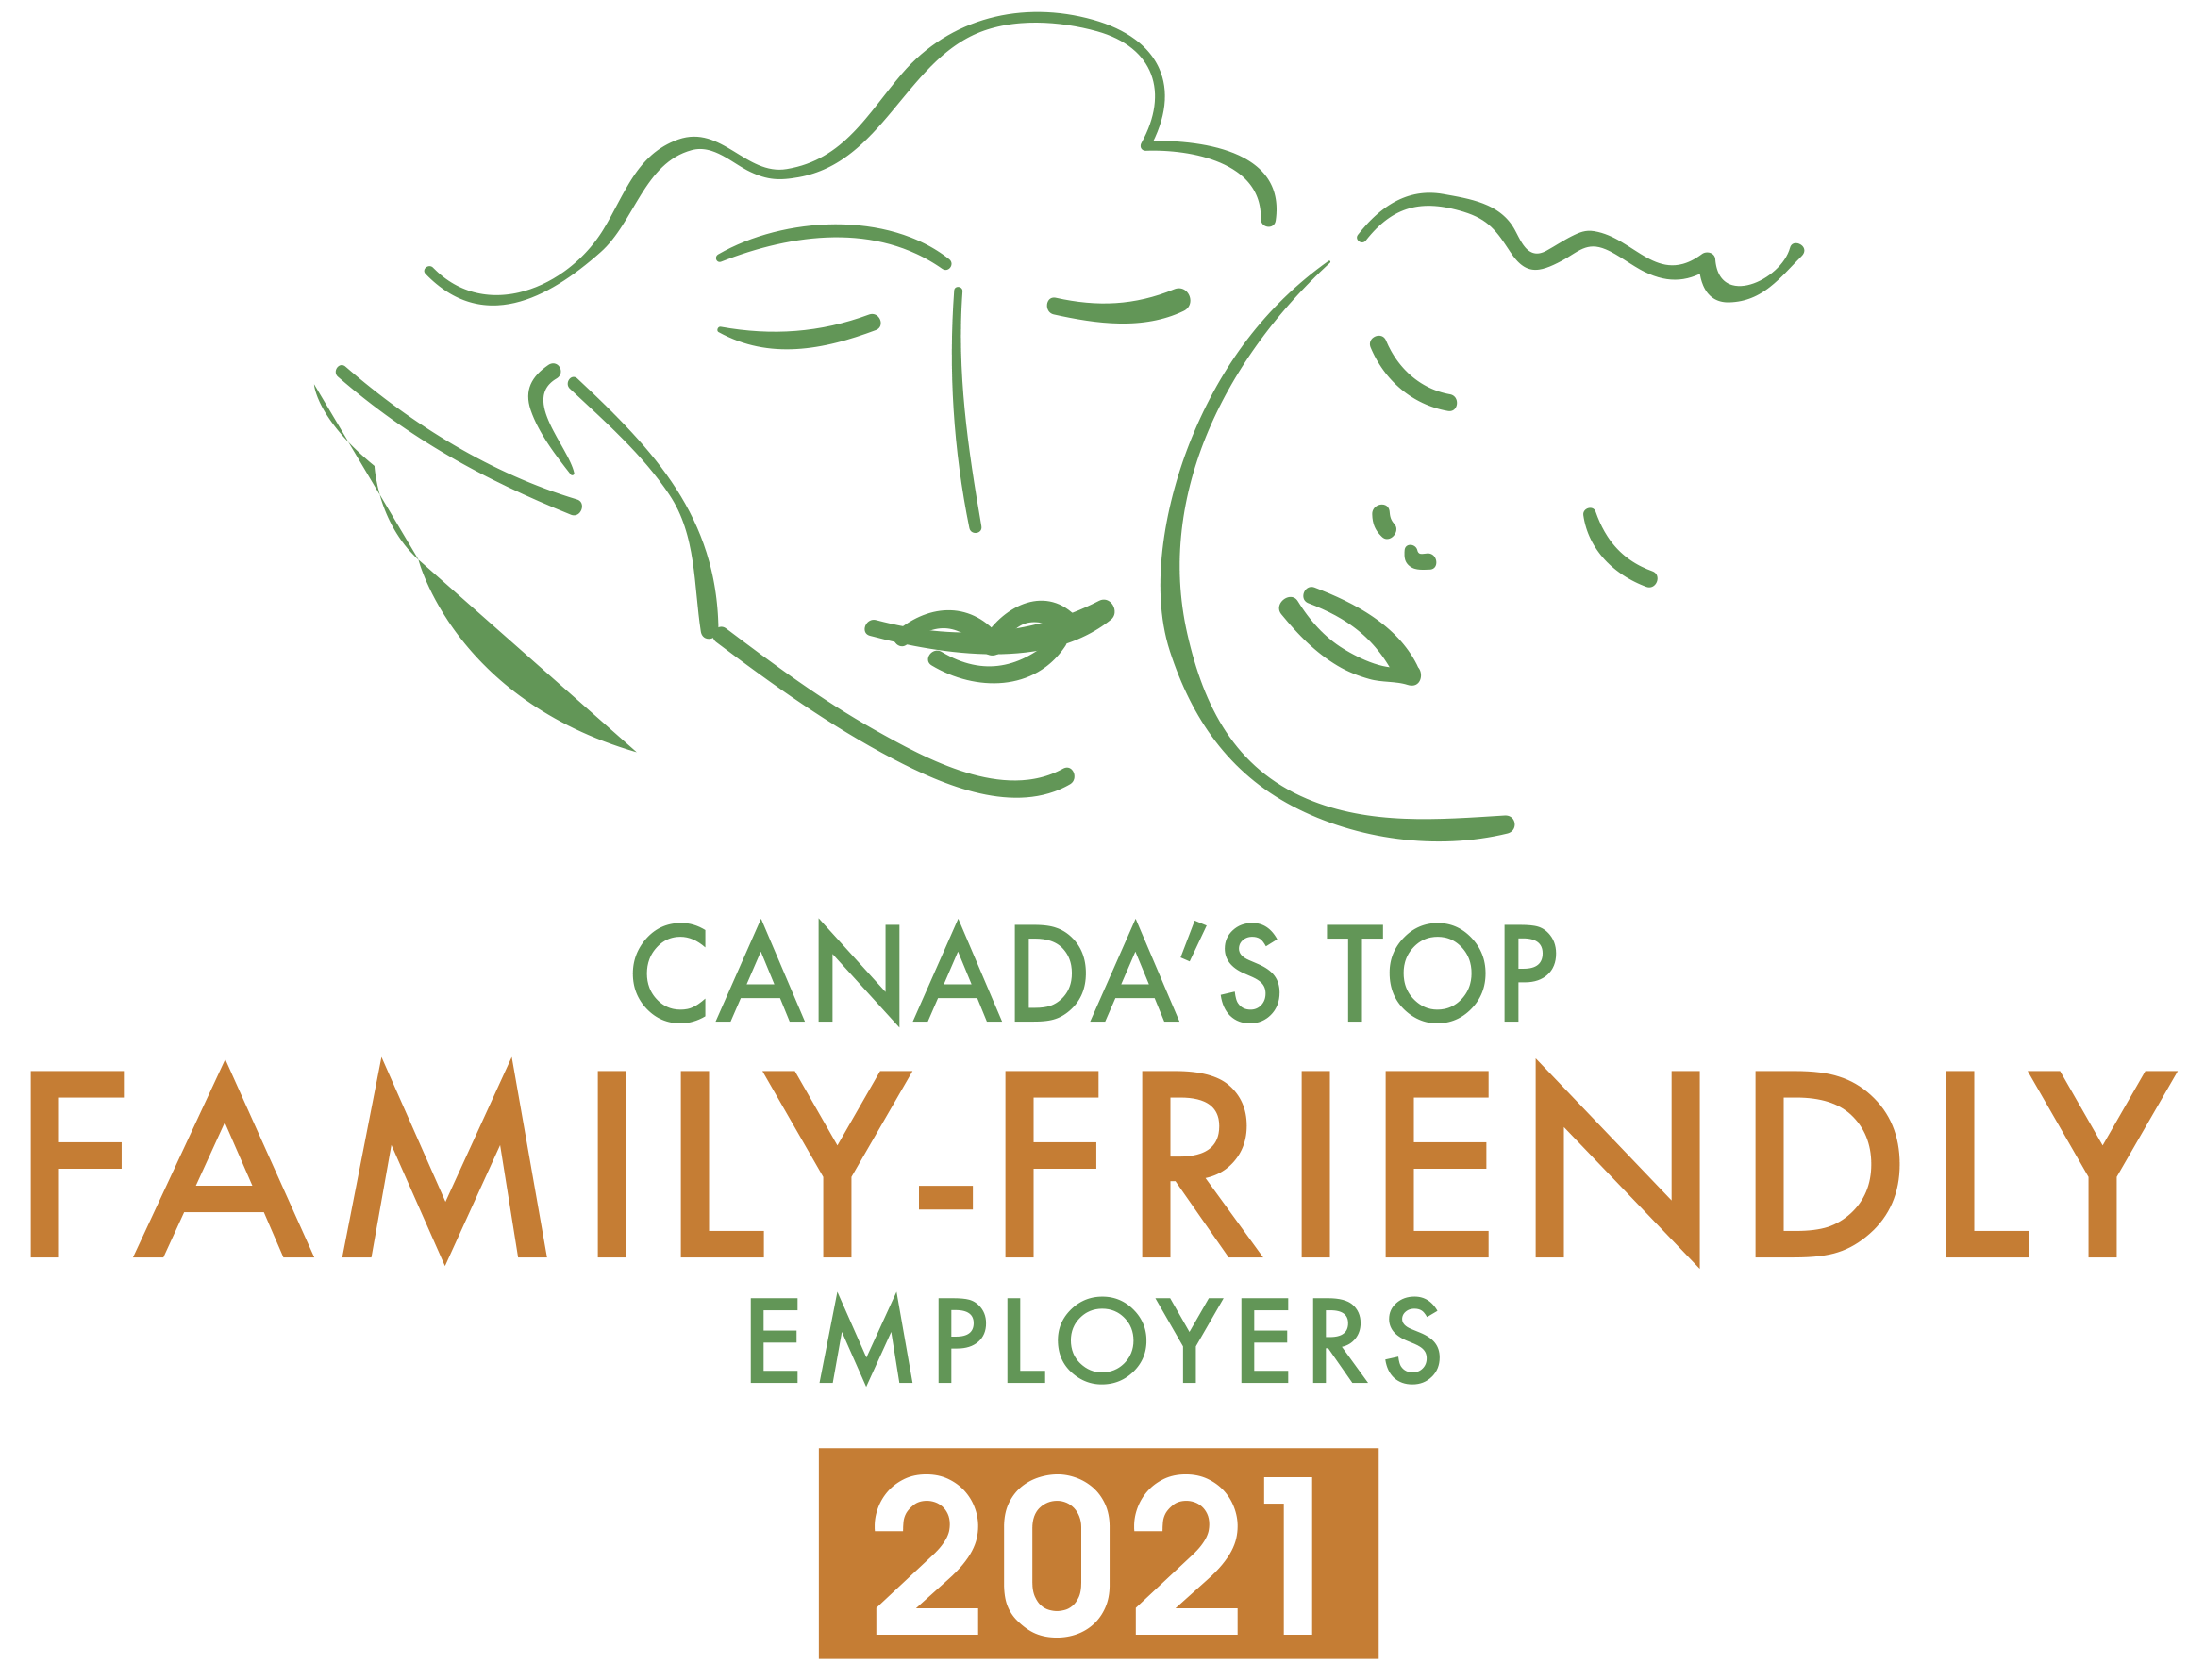 One of Canada's top family friendly employers